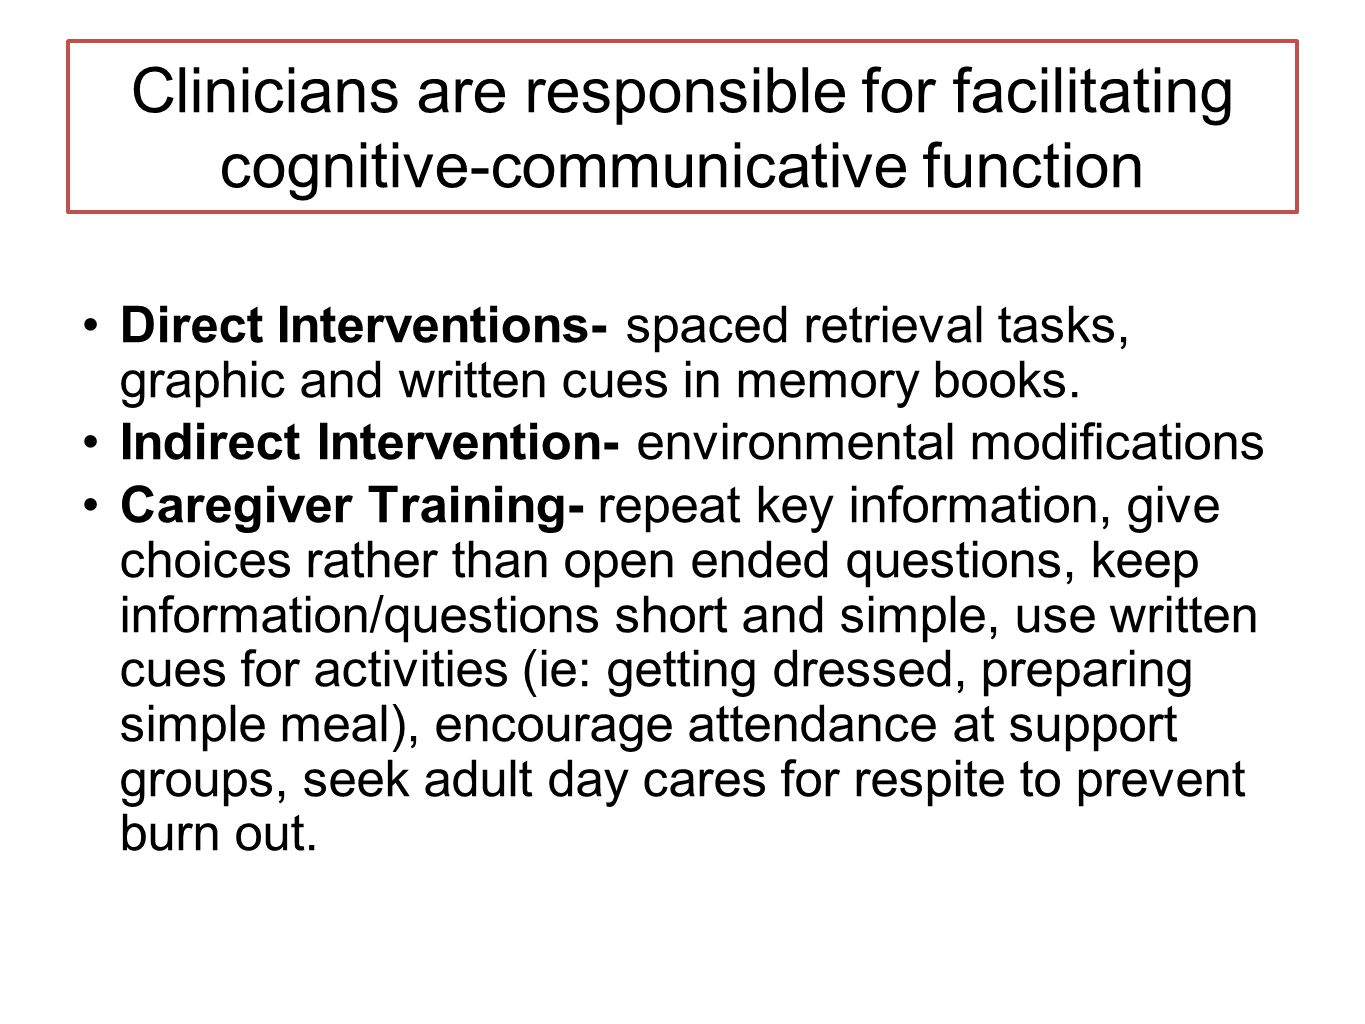 Clinicians are responsible for facilitating cognitive-communicative function Direct Interventions- spaced retrieval tasks, graphic and written cues in memory books.